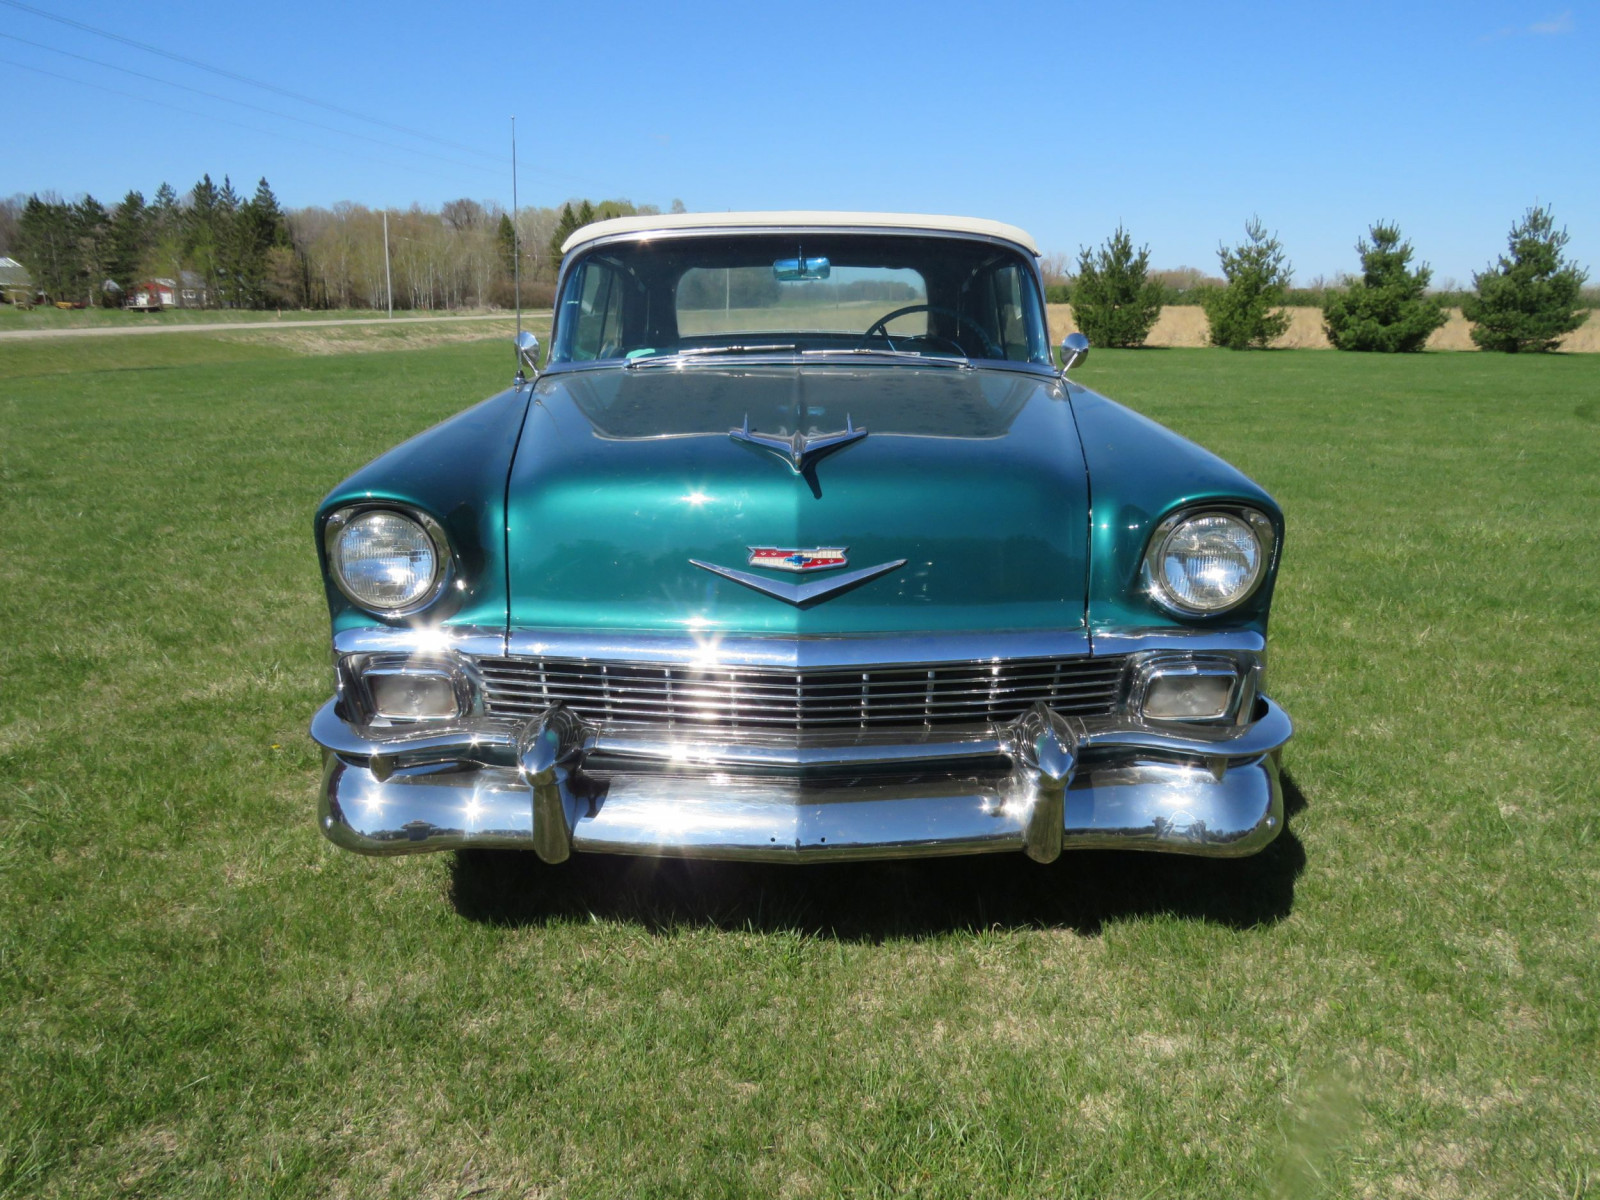 1956 Chevrolet Bel Air Convertible - Image 2